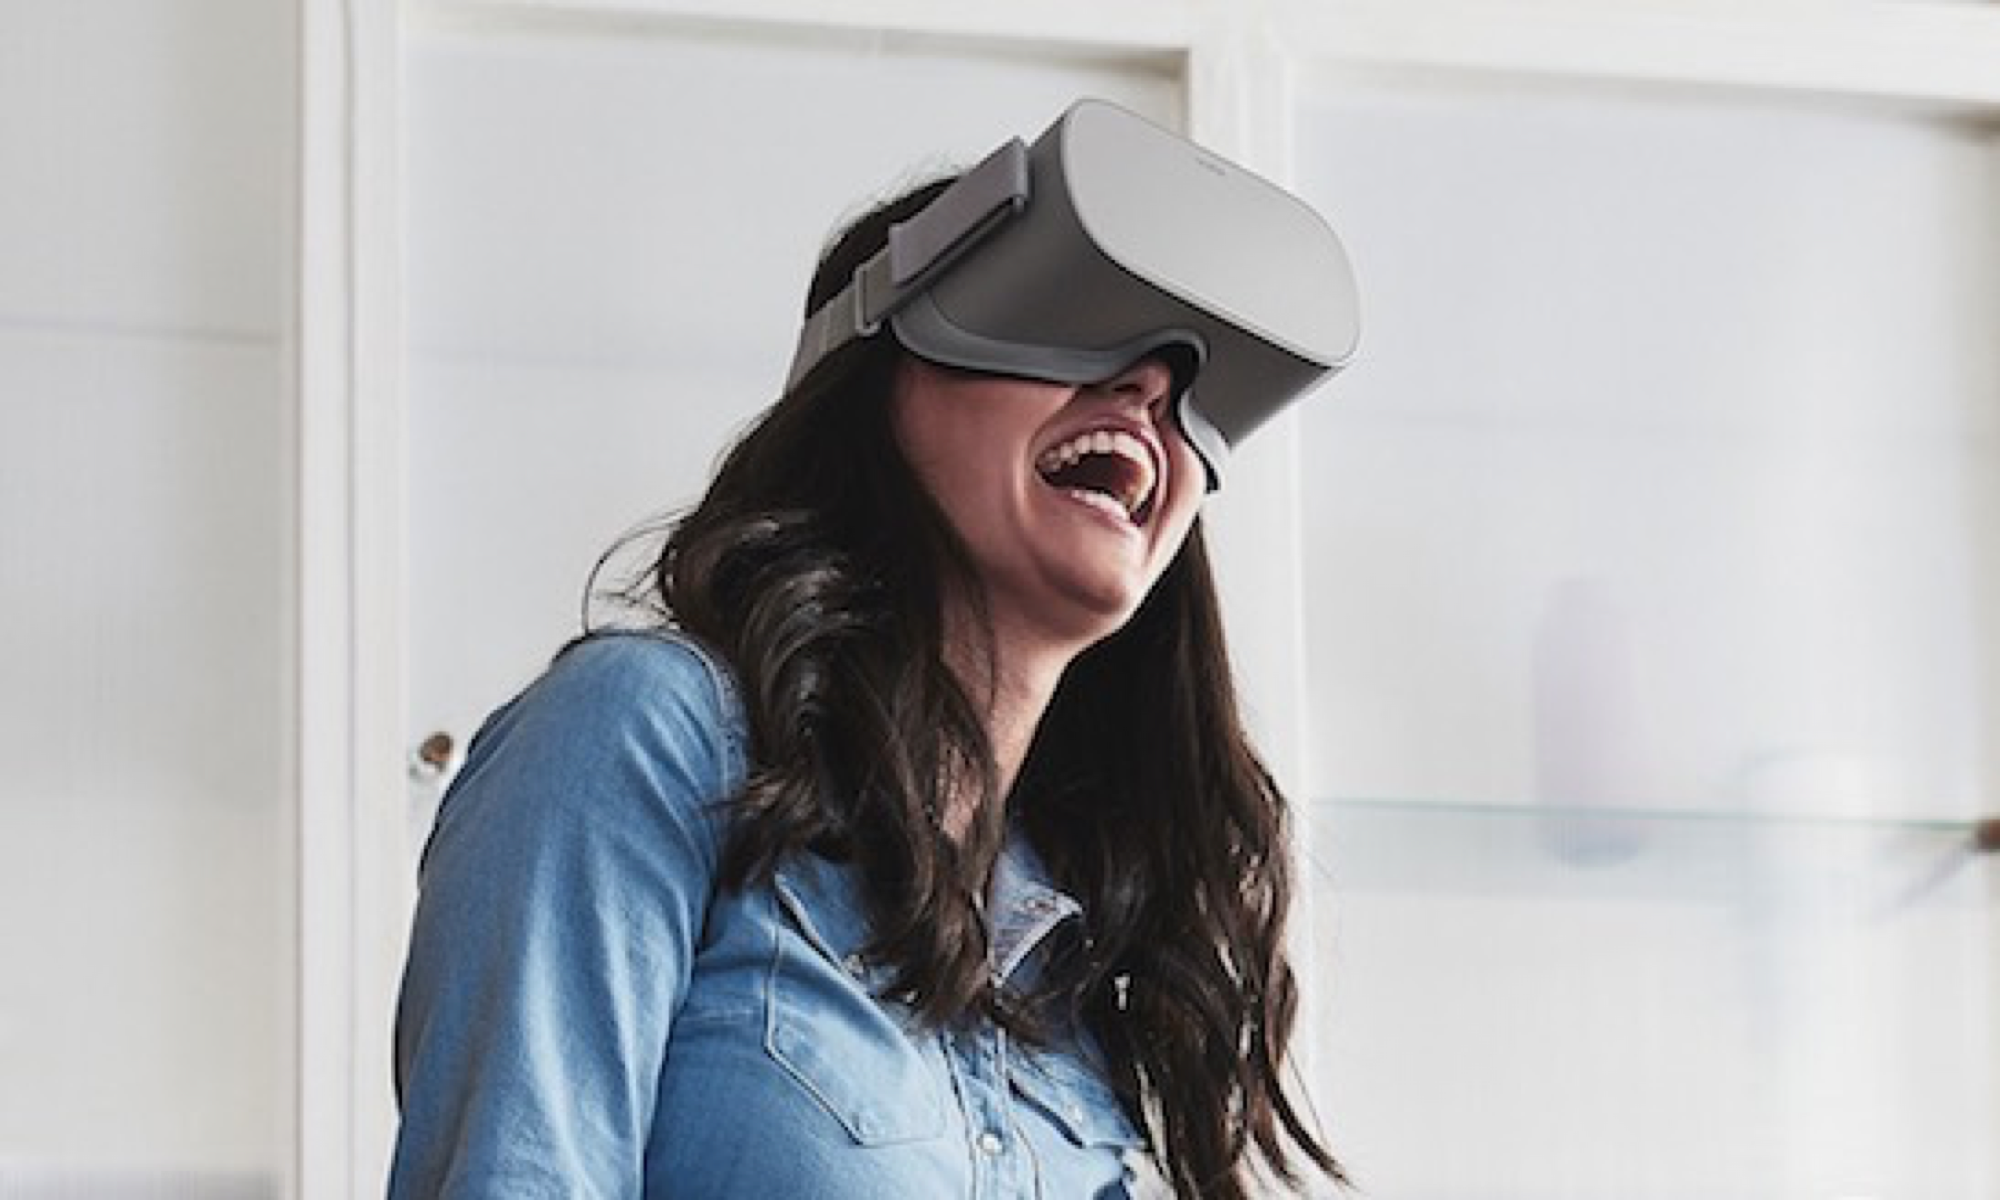 Empowering Your Every Day - Meet Eyeflite Ava, virtual reality software designed to improve your daily life, because we believe that a disability should not define one's abilities.